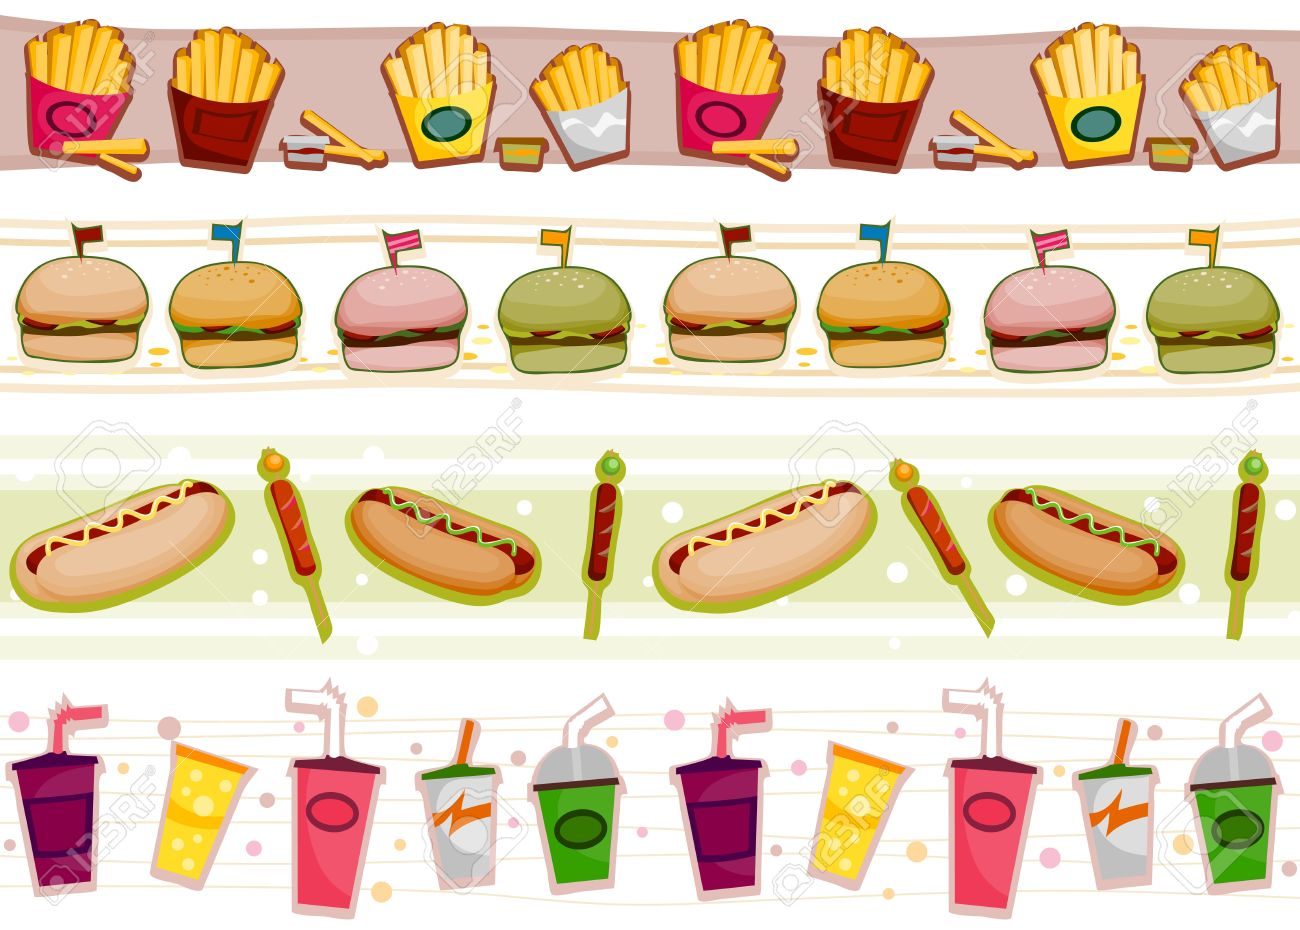 four border designs of fast food products stock photo picture and